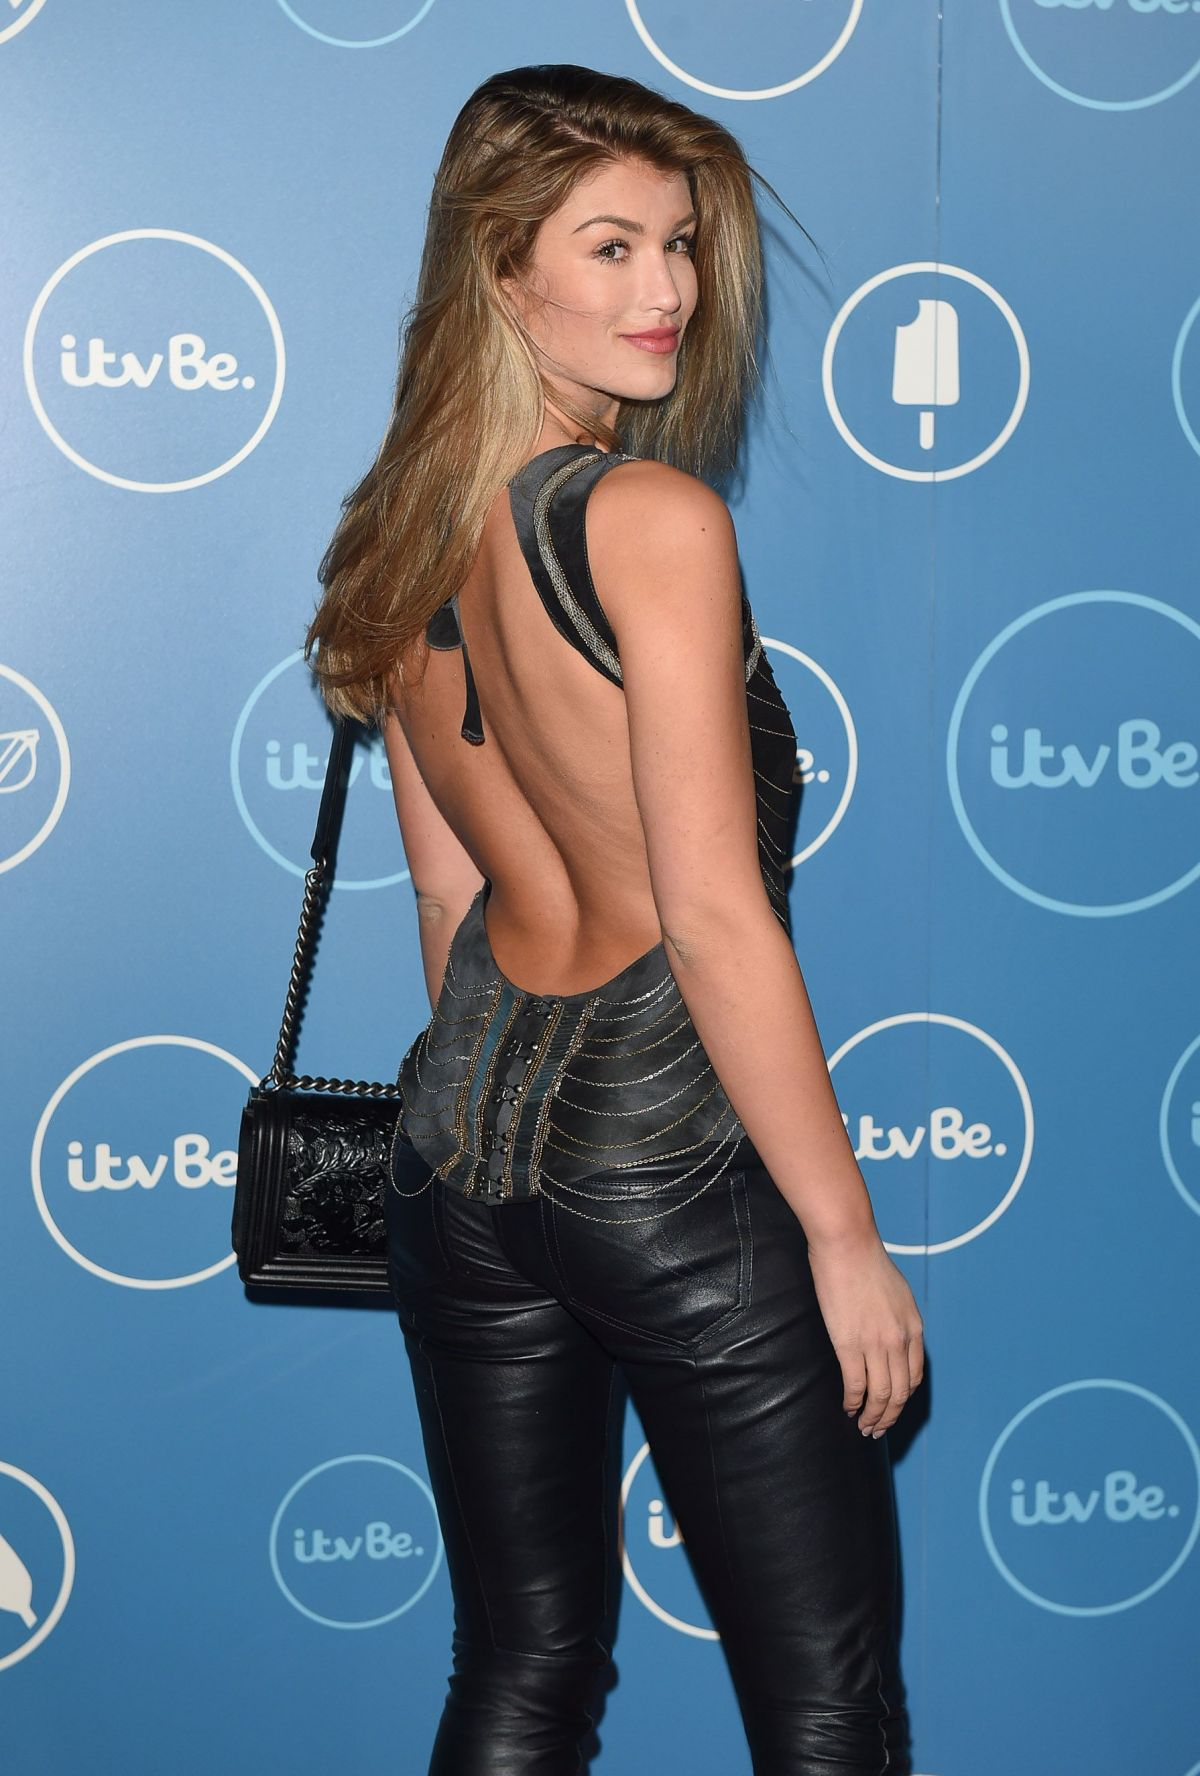 AMY WILLERTON at ITV Be Launch